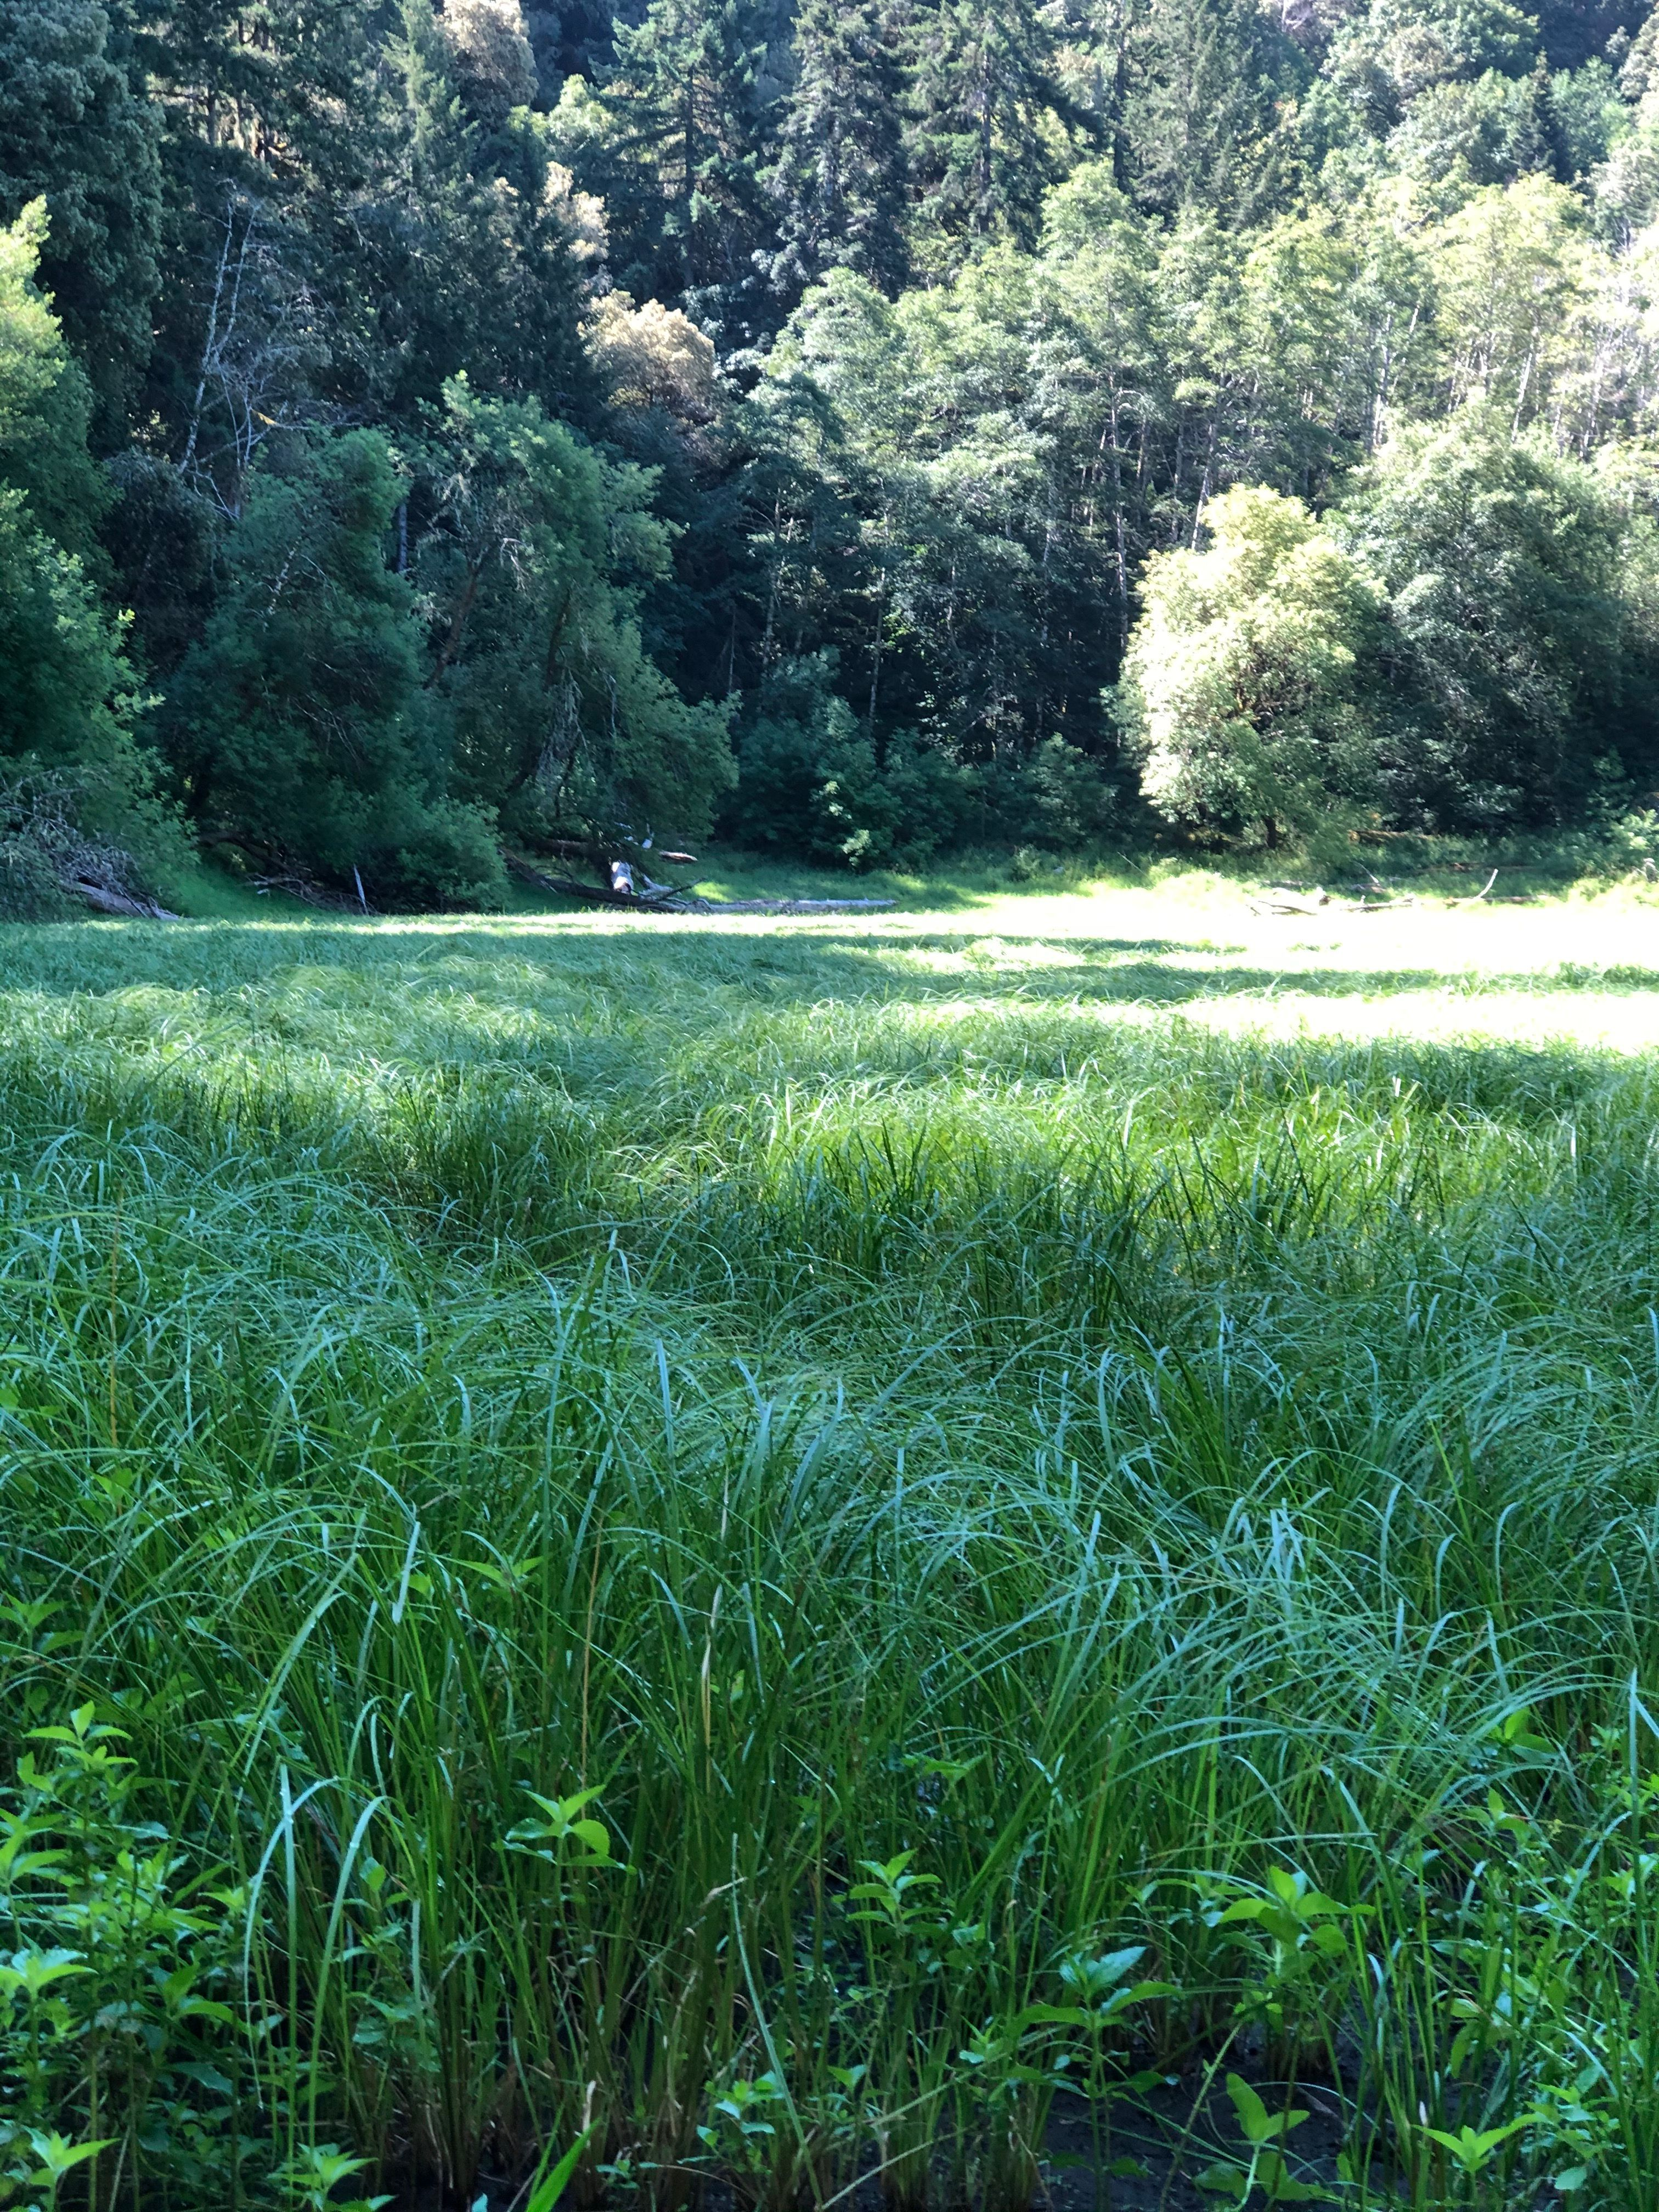 Raven Ridge - Wild Rivers Land Trust's Newest Conservation Easement